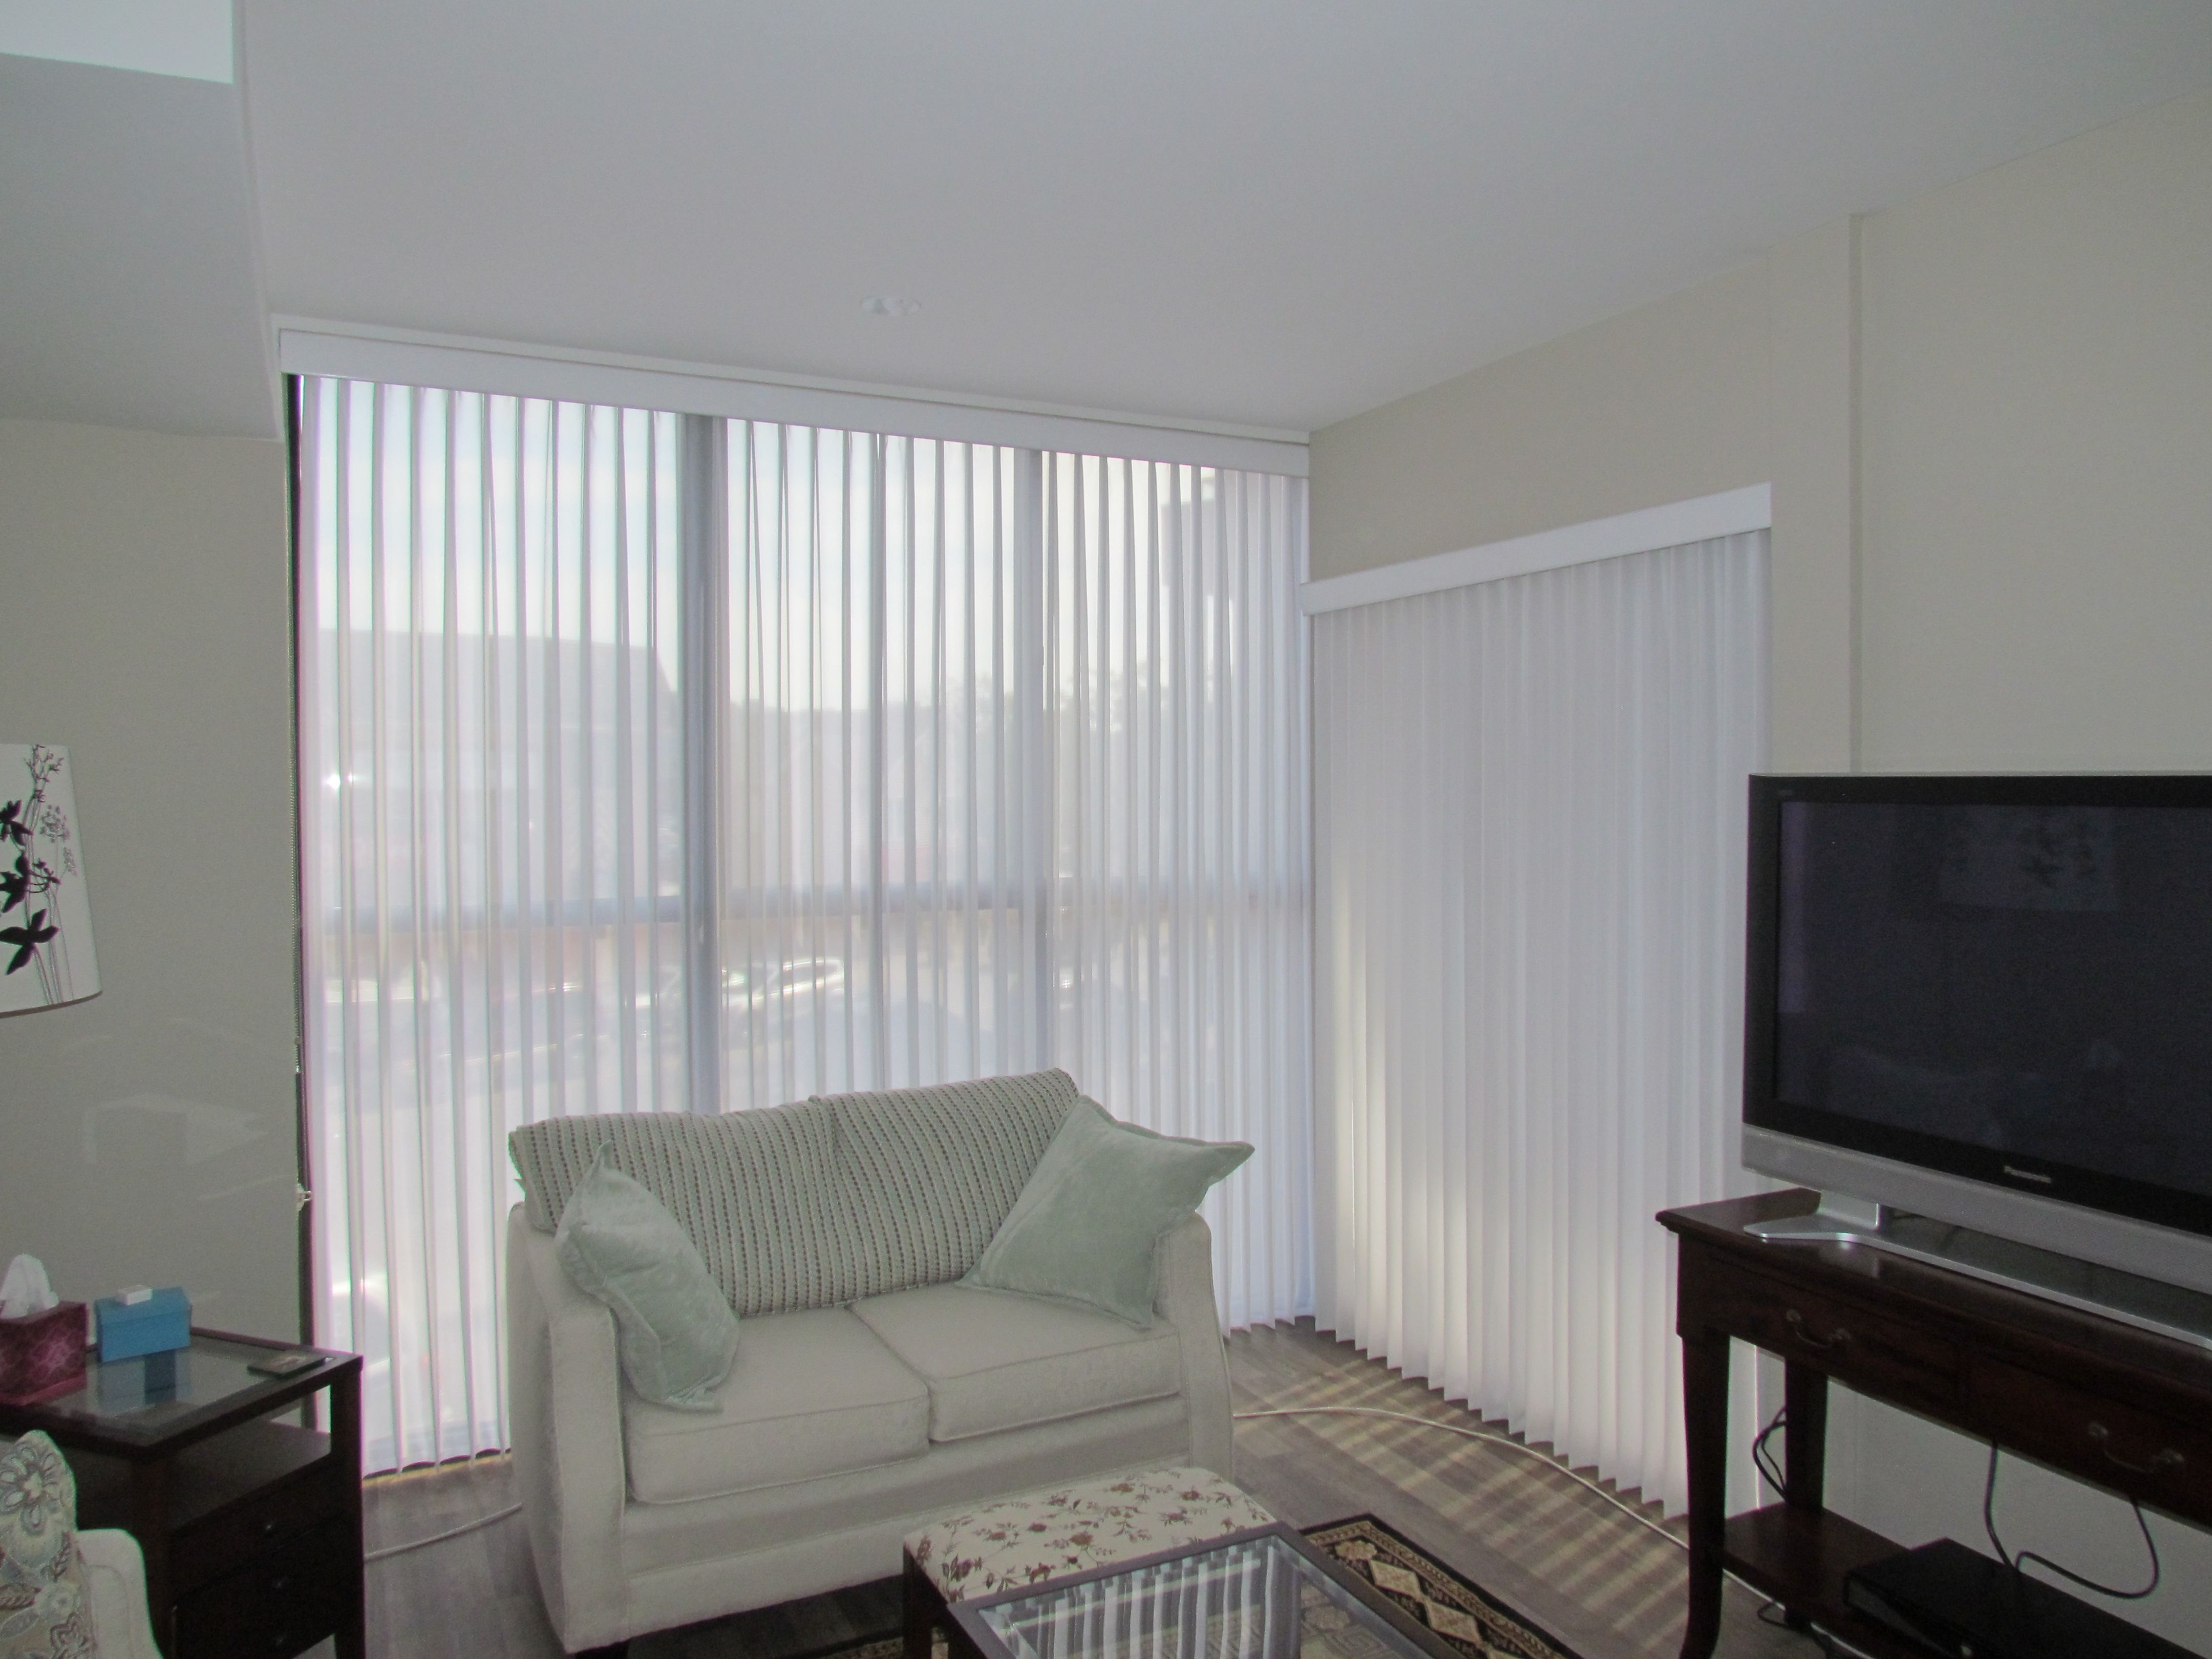 Vertical blinds with attached sheer. Easy to clean (remove